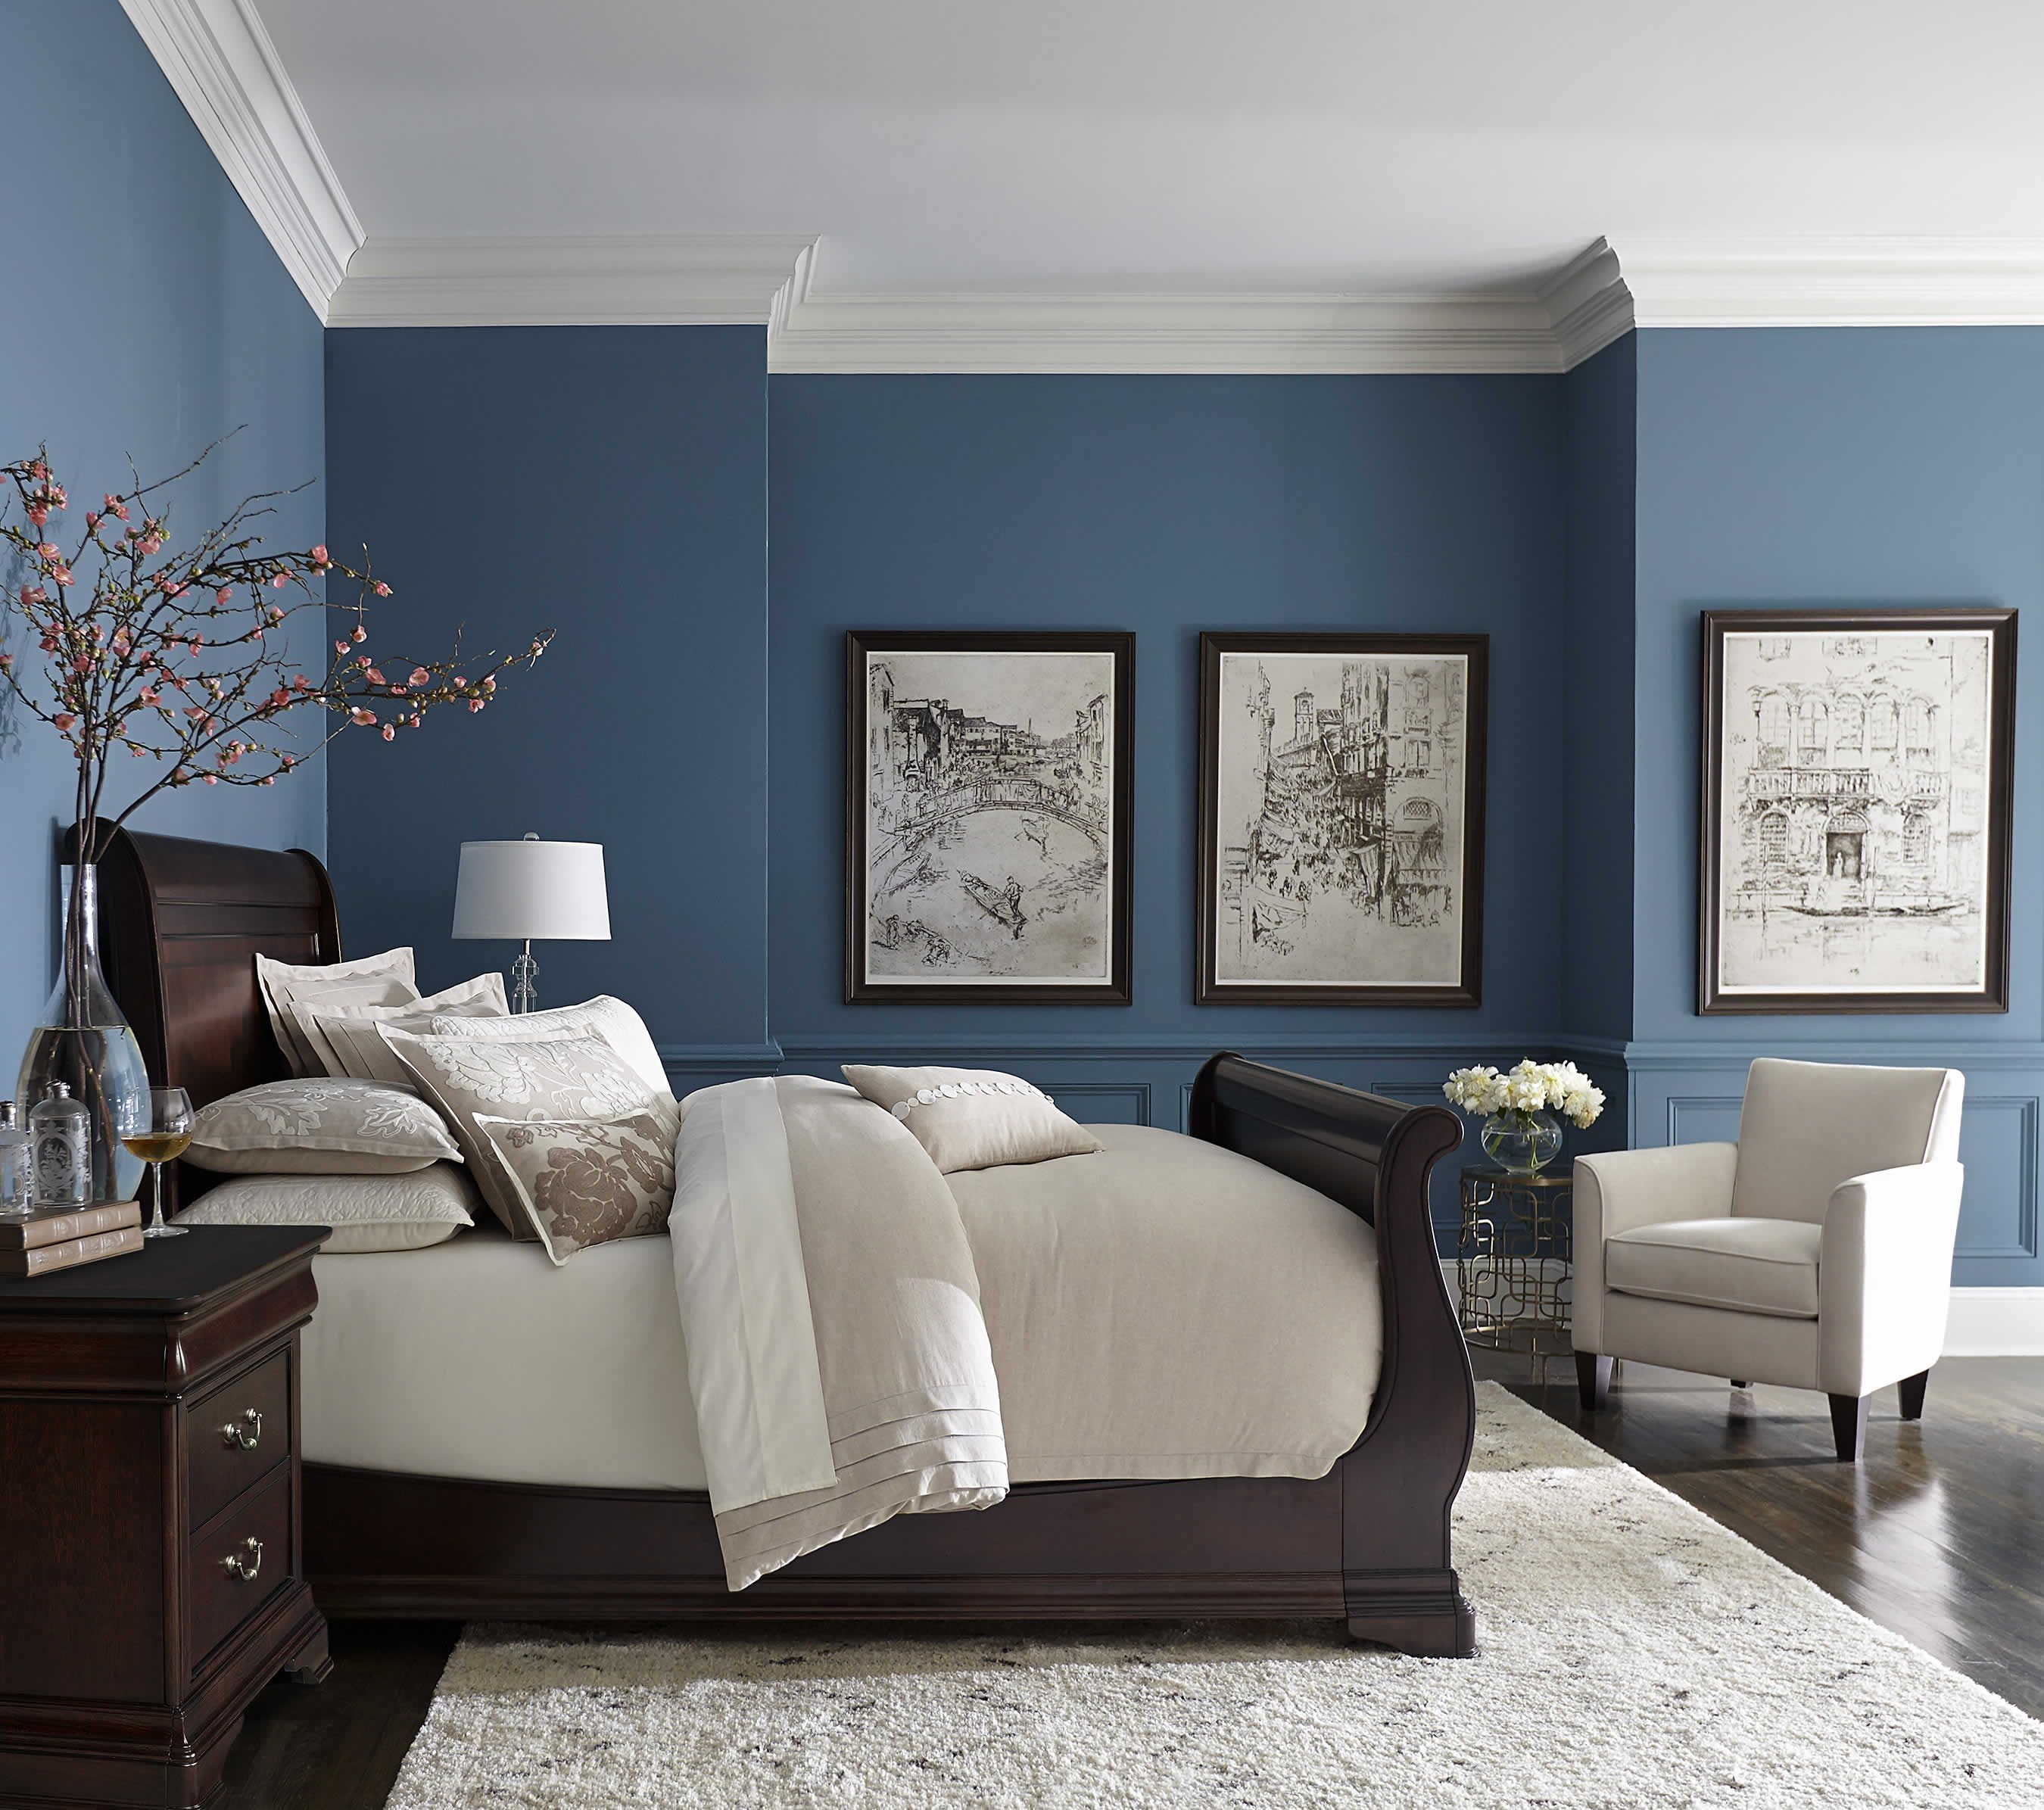 Adorable Paint Colors For Bedroom With Dark Furniture Goodworksfurniture In 2020 Bedroom Paint Colors Master Master Bedroom Colors Master Bedroom Paint